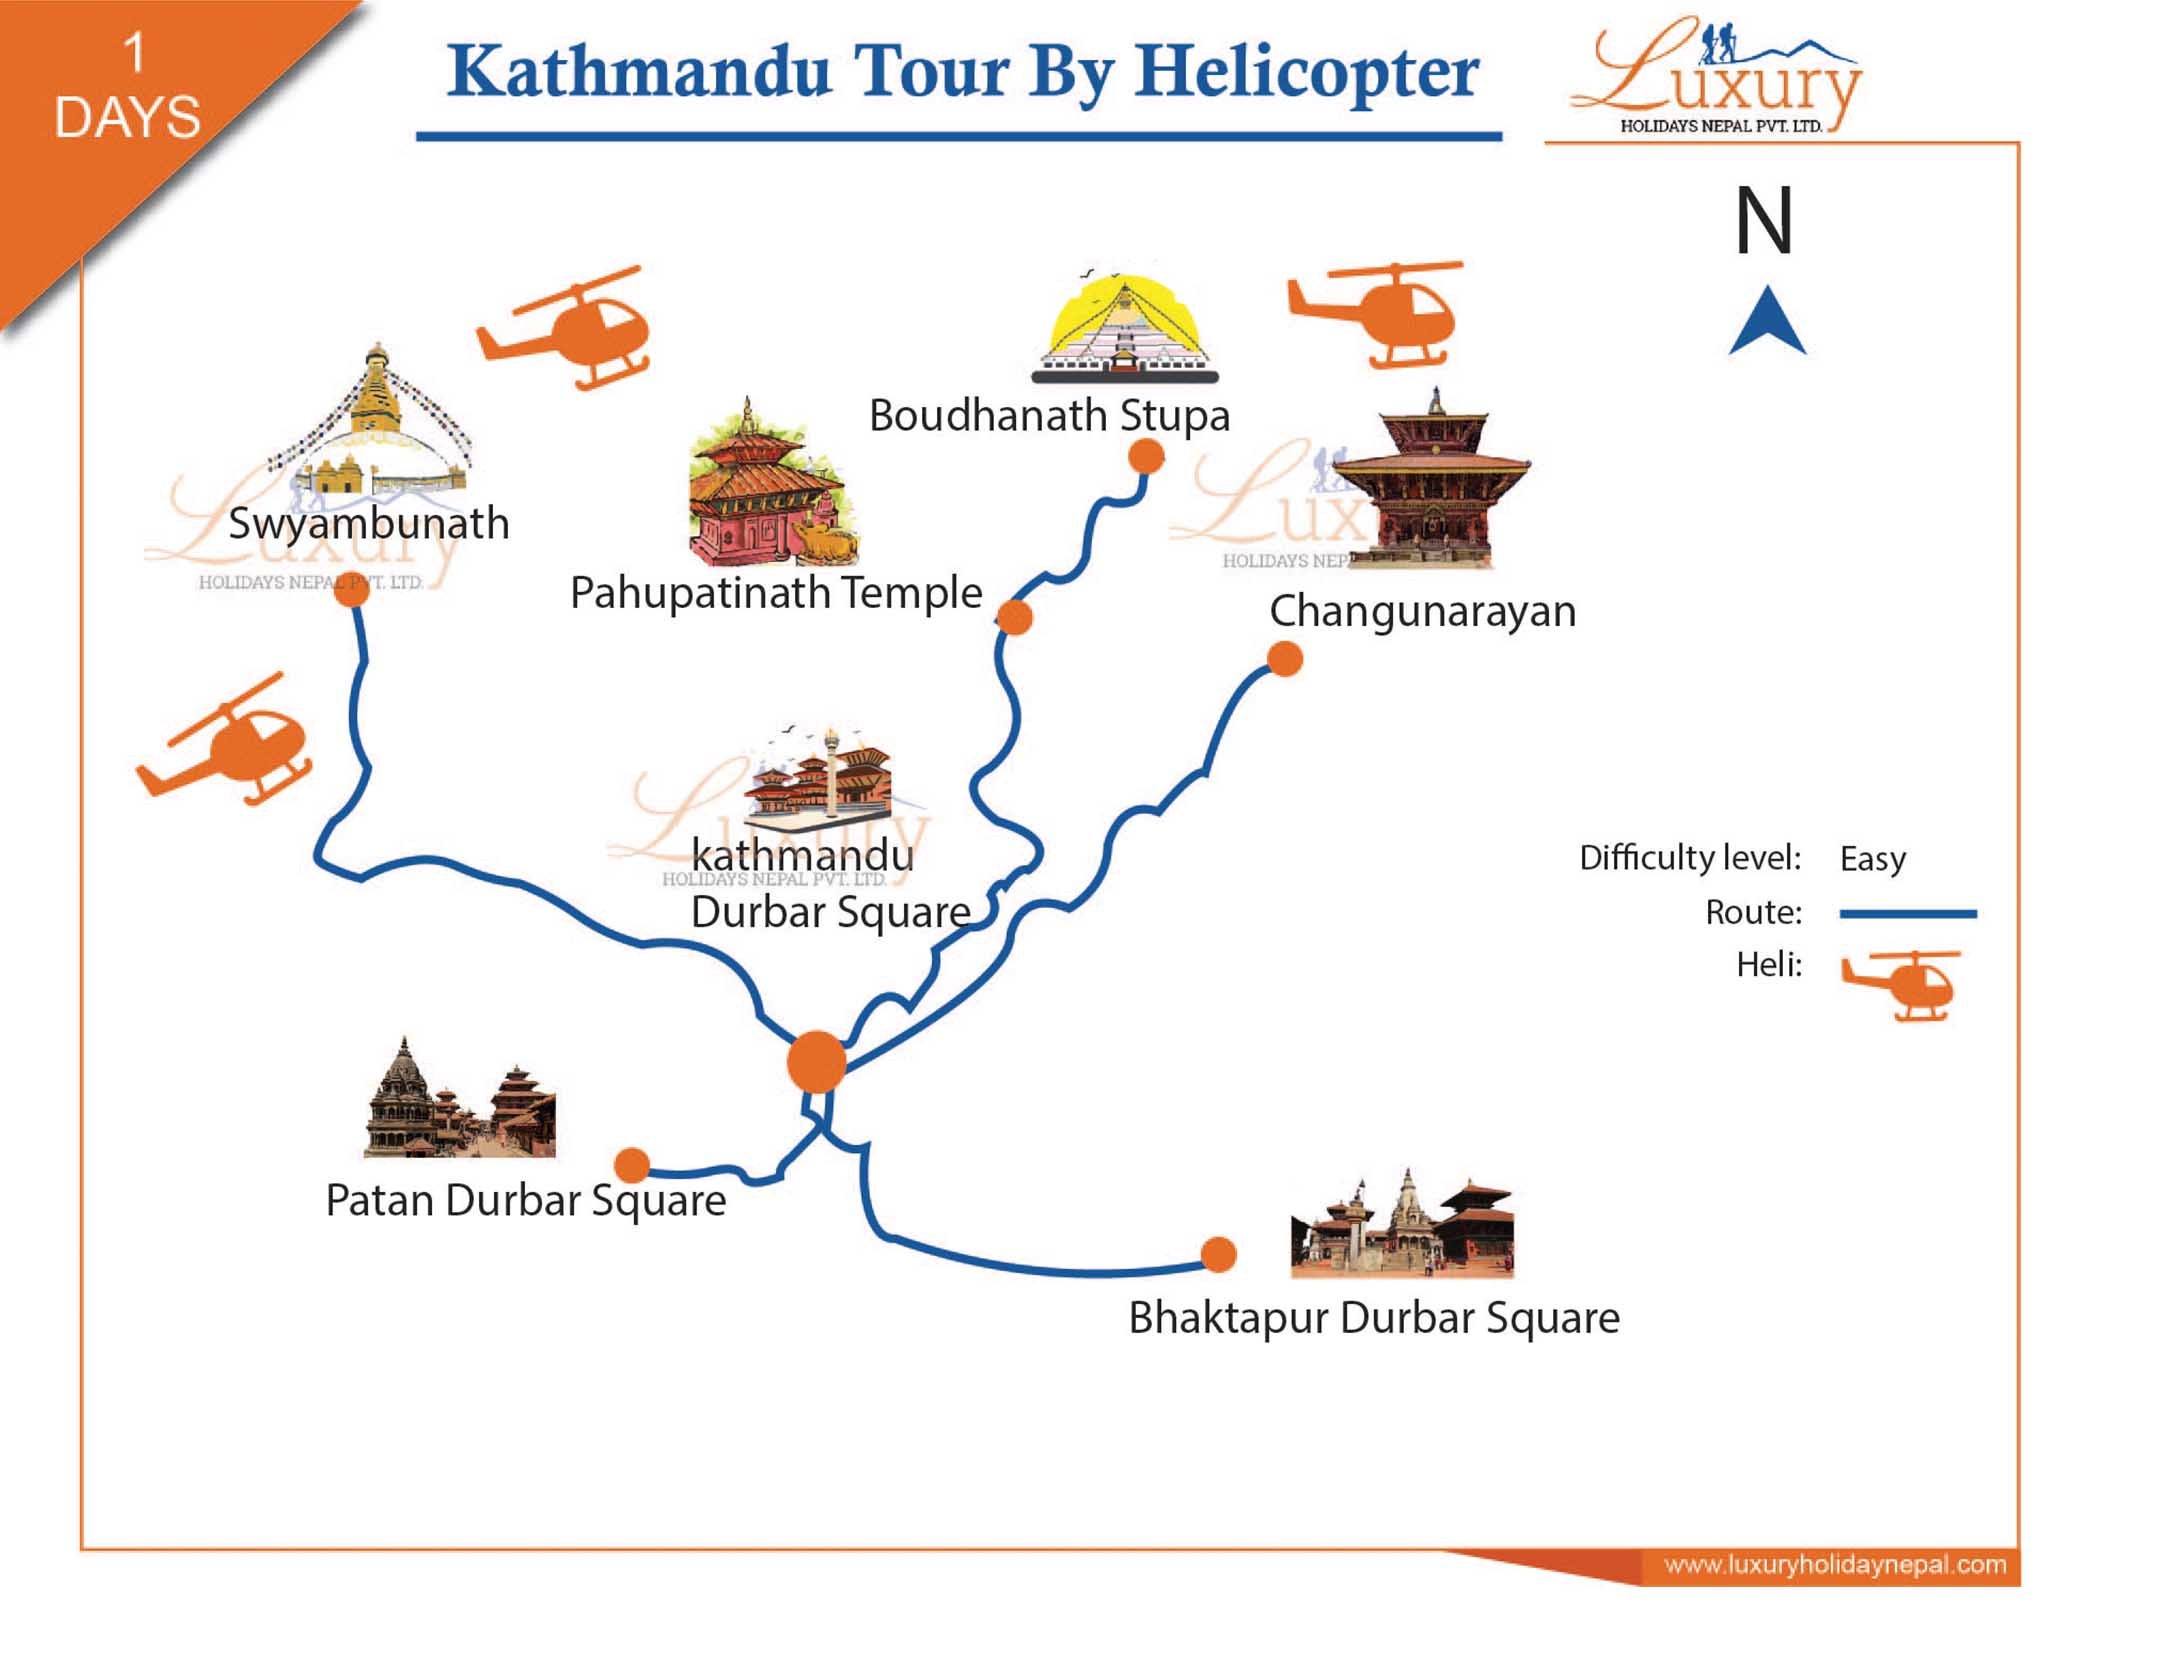 Kathmandu tour by Helicopter Trip Map